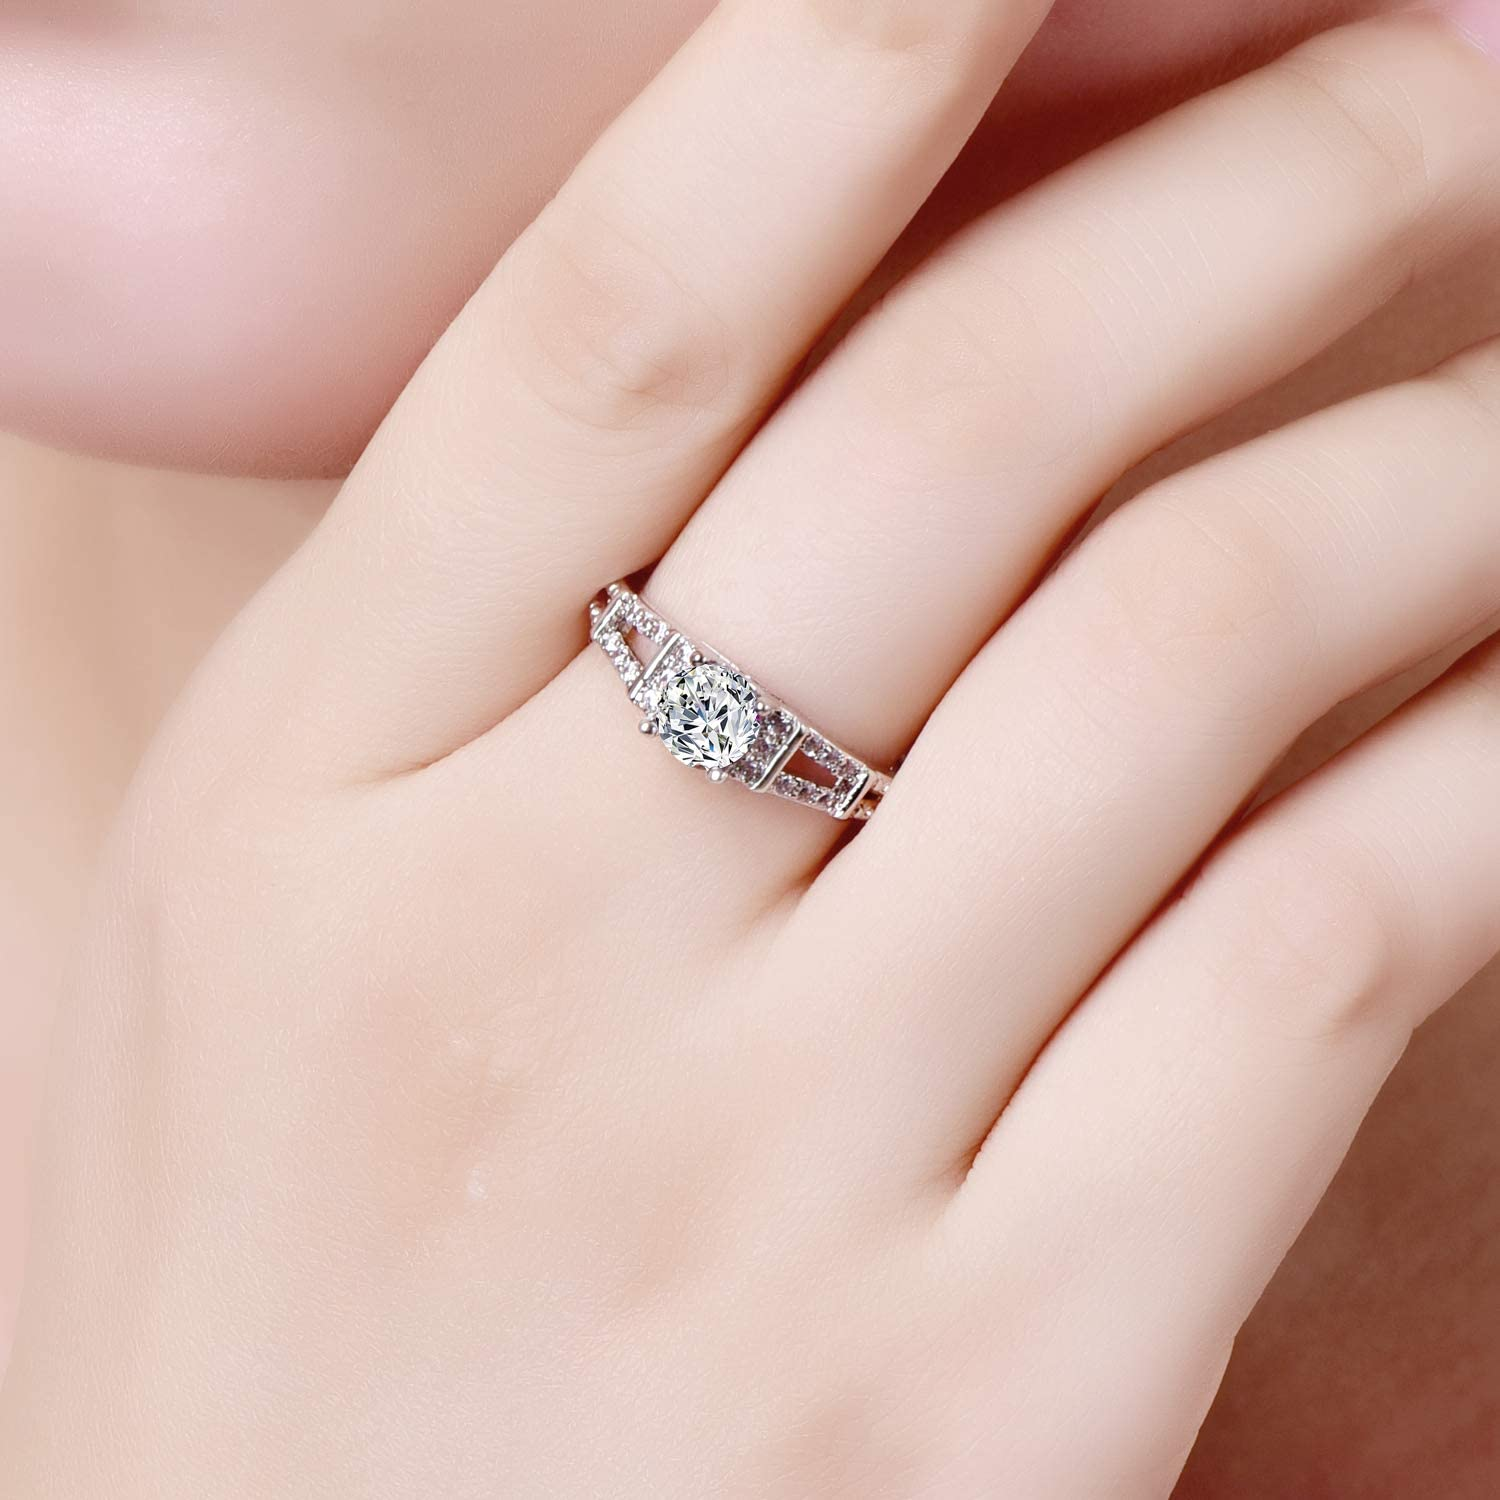 Veunora 925 Sterling Silver Plated Lab-Created Black Elegant Promise Proposal Engagement Wedding Rings for Women Girl Size